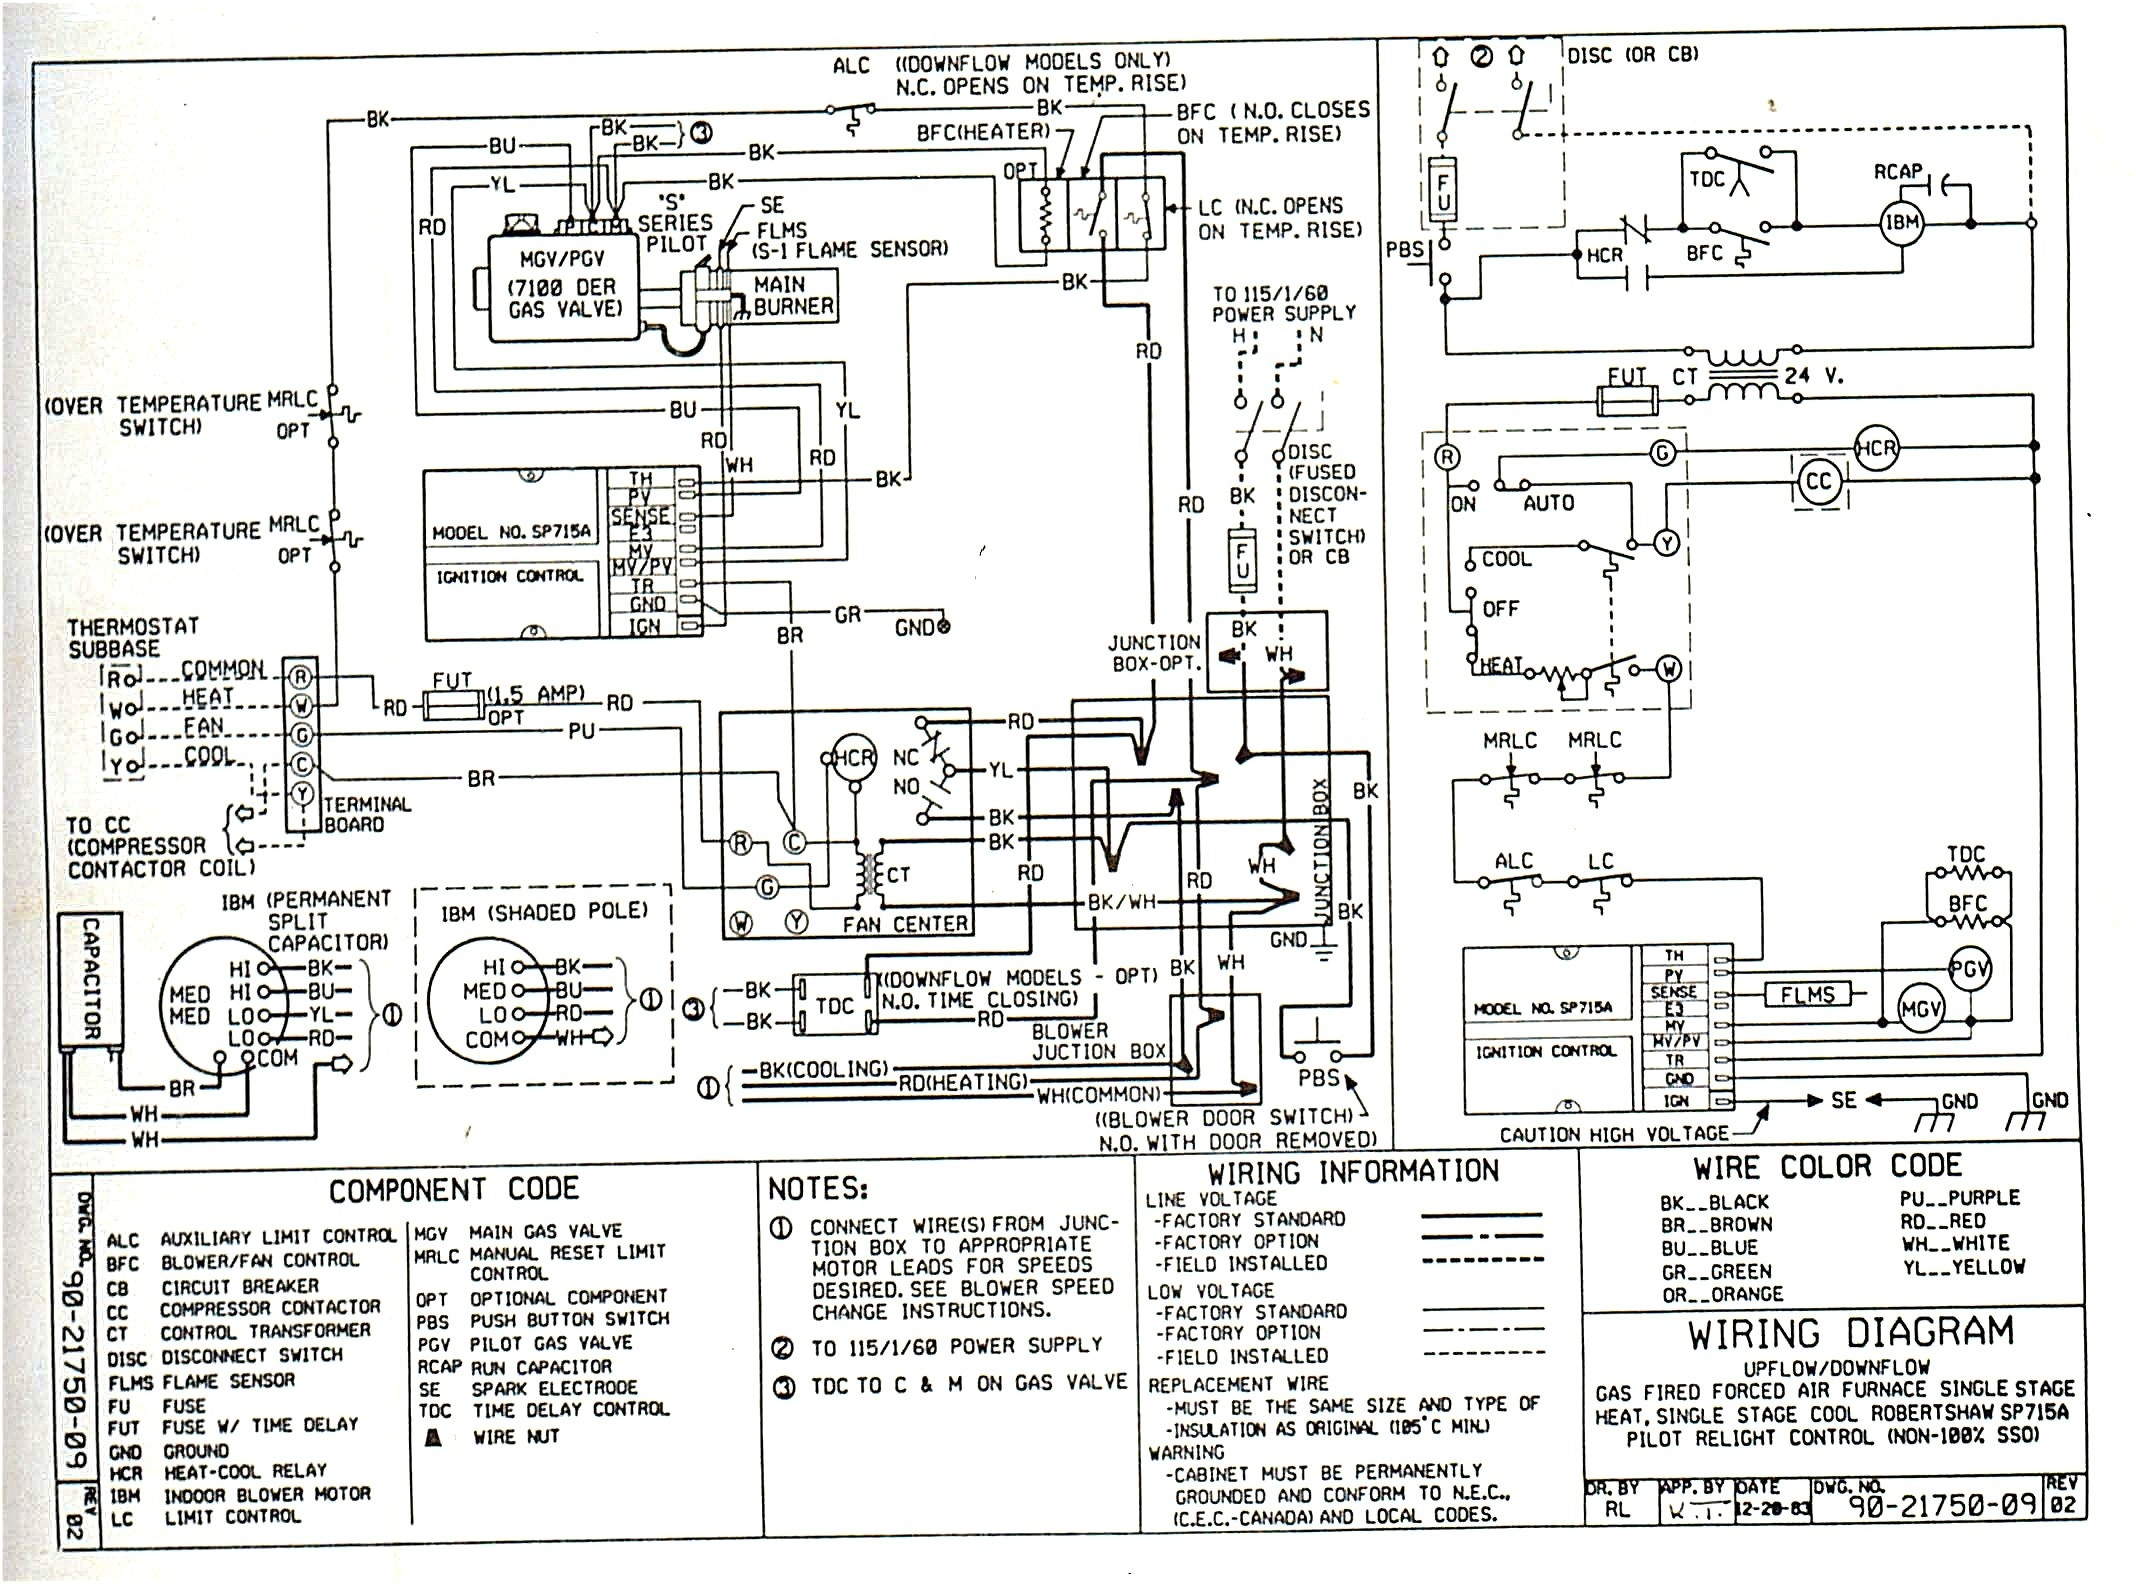 old gas furnace wiring diagram old icp furnace wiring diagram tempstar heat pump wiring diagram | free wiring diagram #9